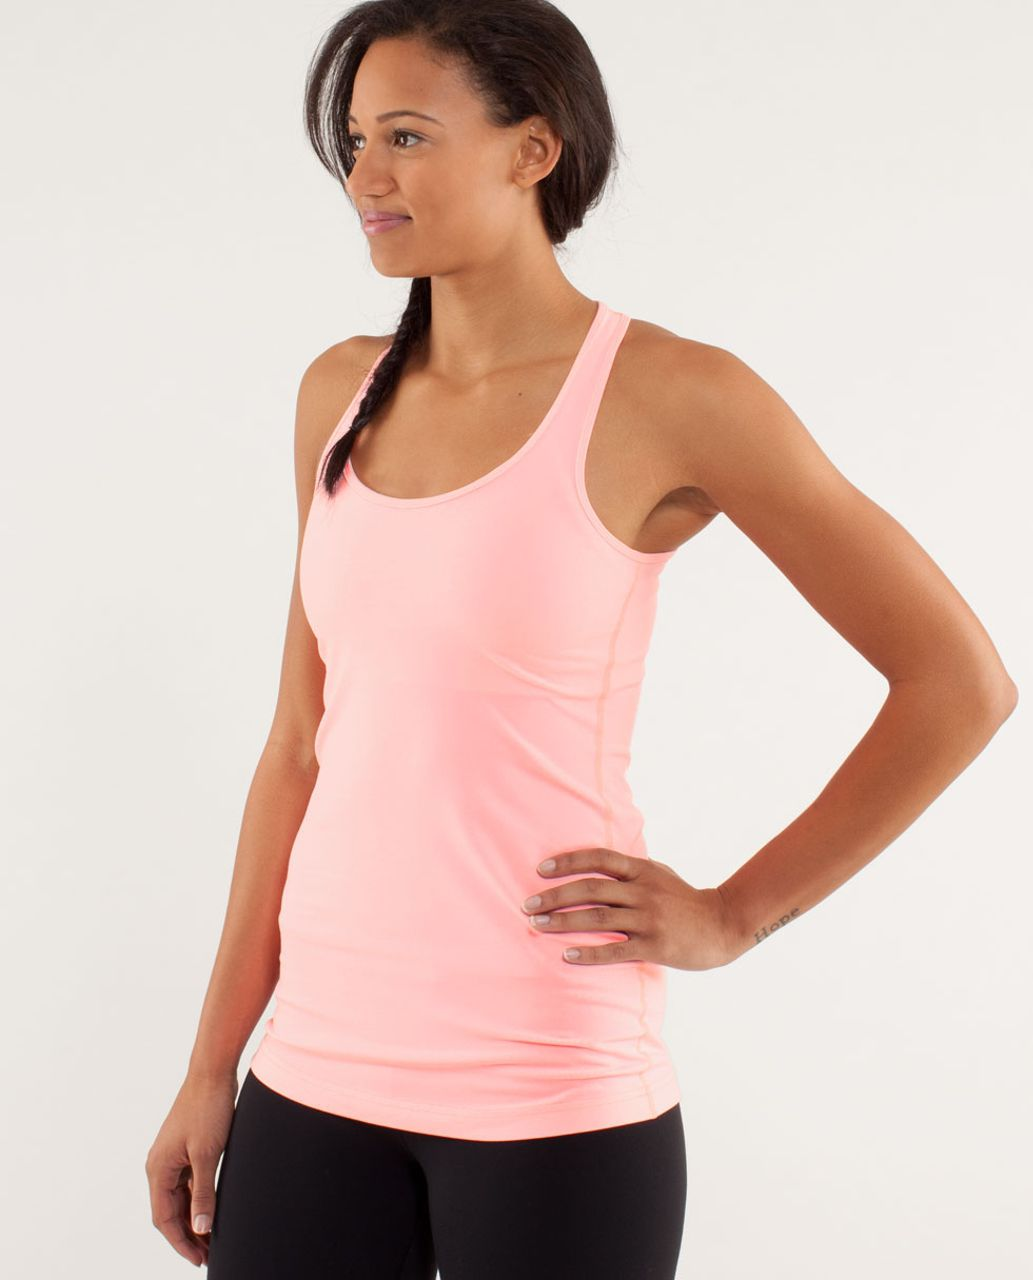 Lululemon Cool Racerback (First Release) - Bleached Coral